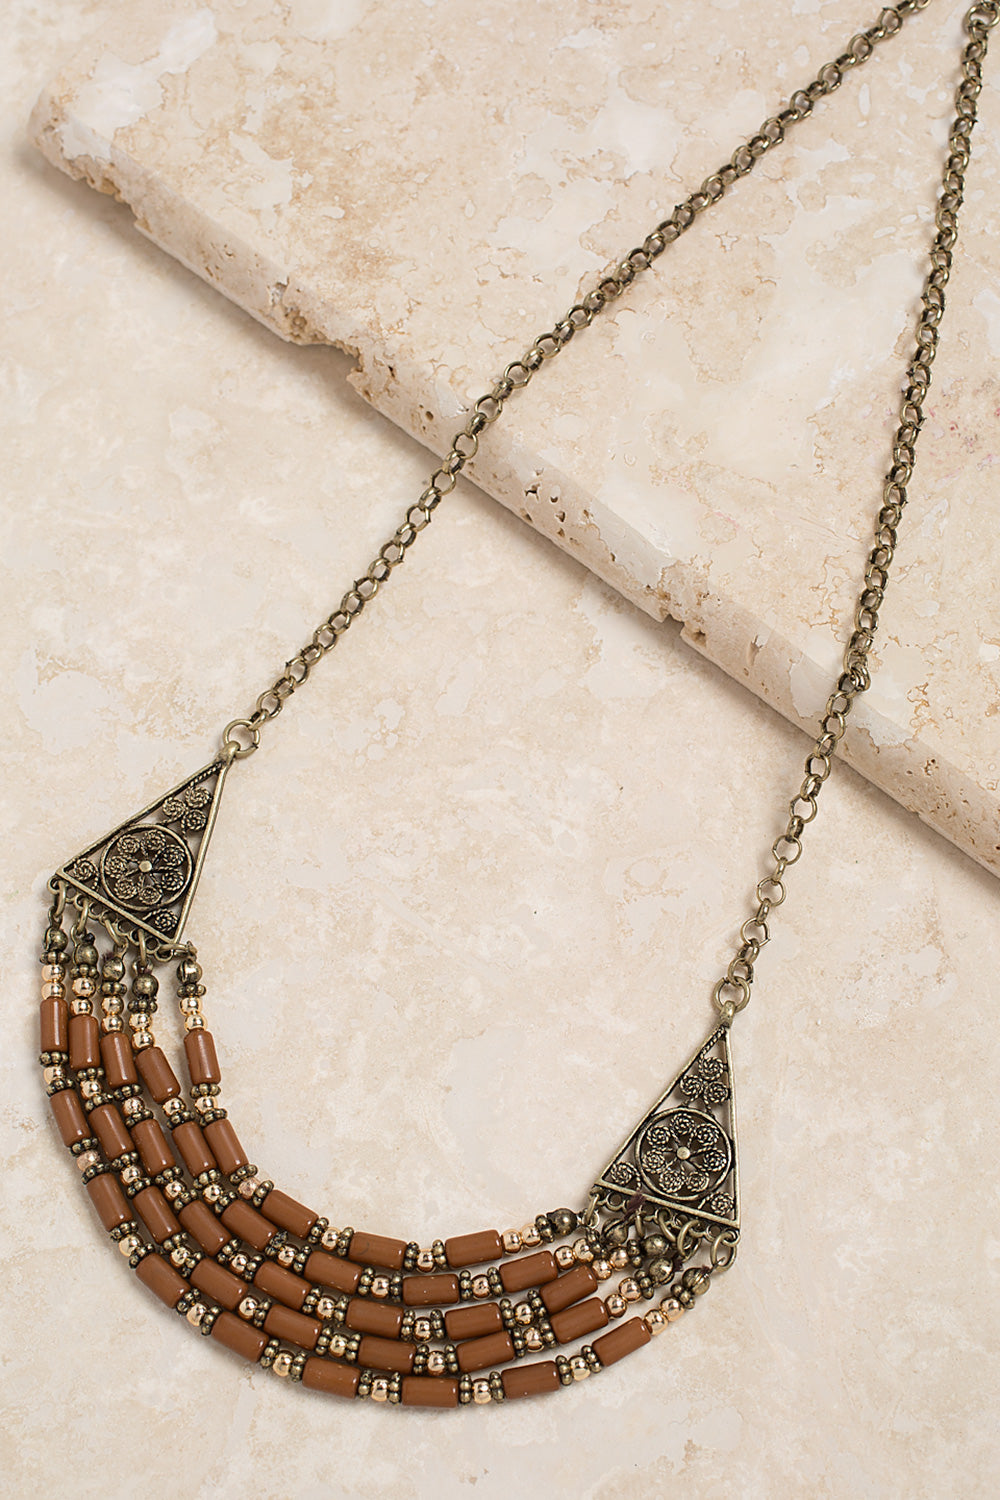 Type 3 Edgy Detail Necklace